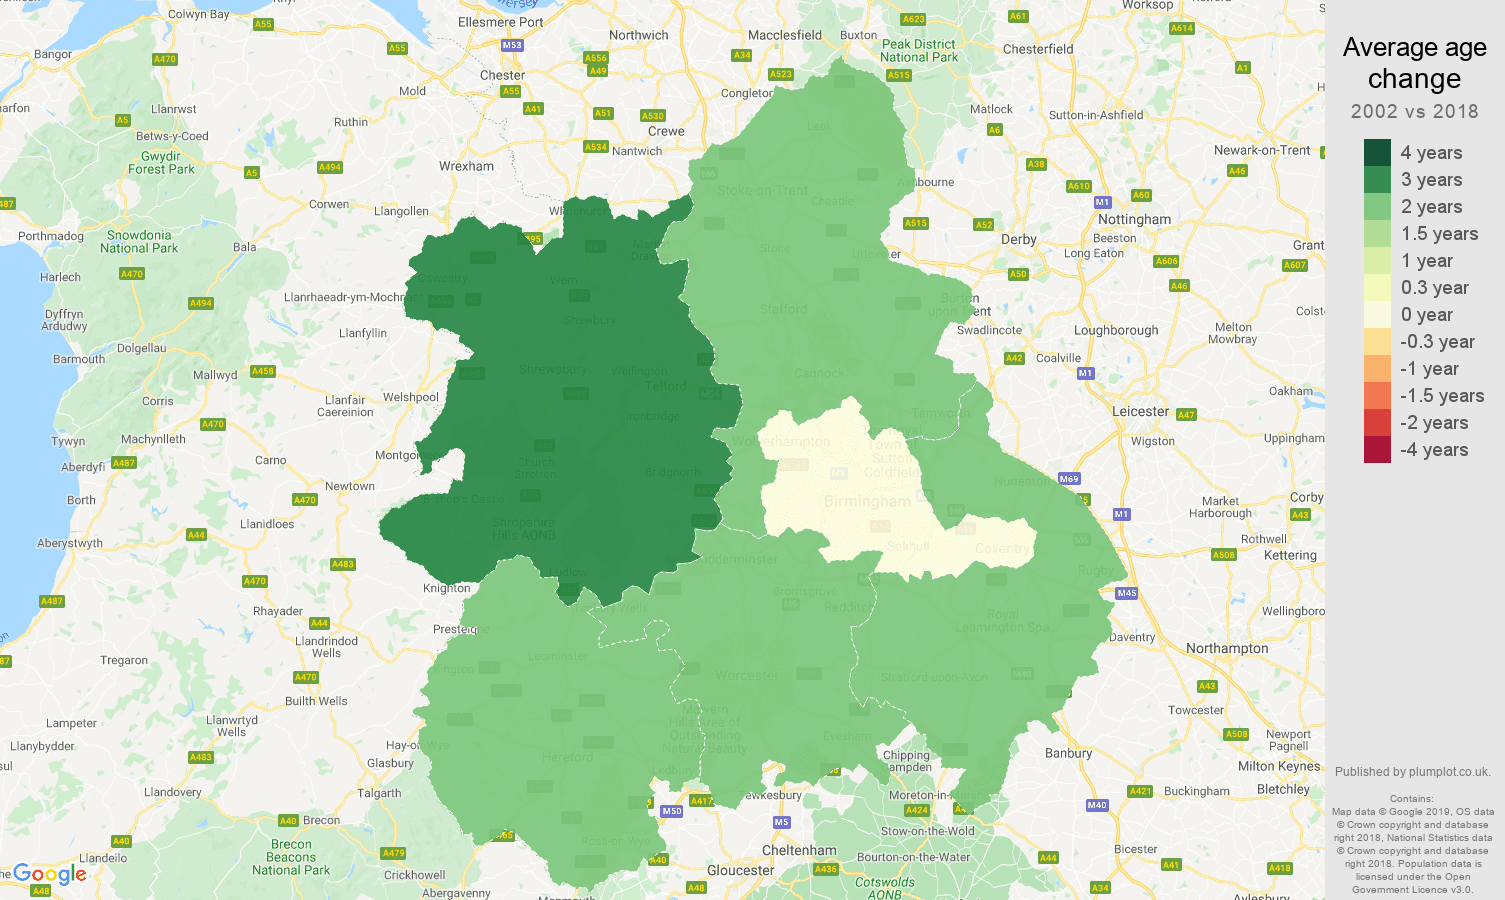 West Midlands average age change map